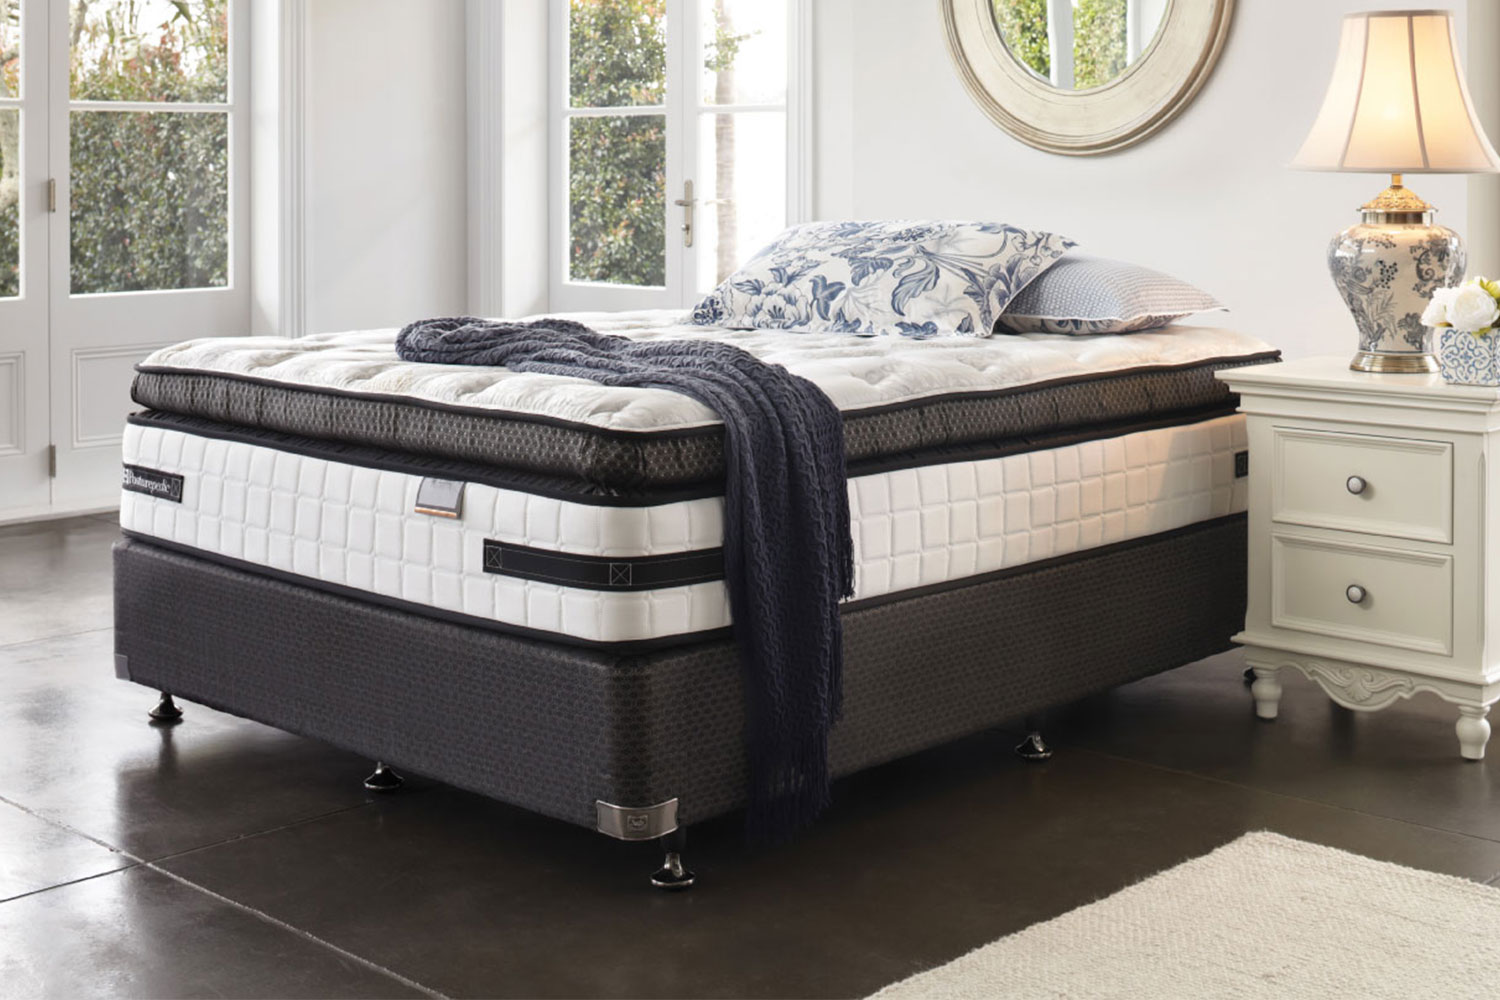 King Bed Ensemble Base Only Kensington Ultra Plush Super King Bed By Sealy Posturepedic